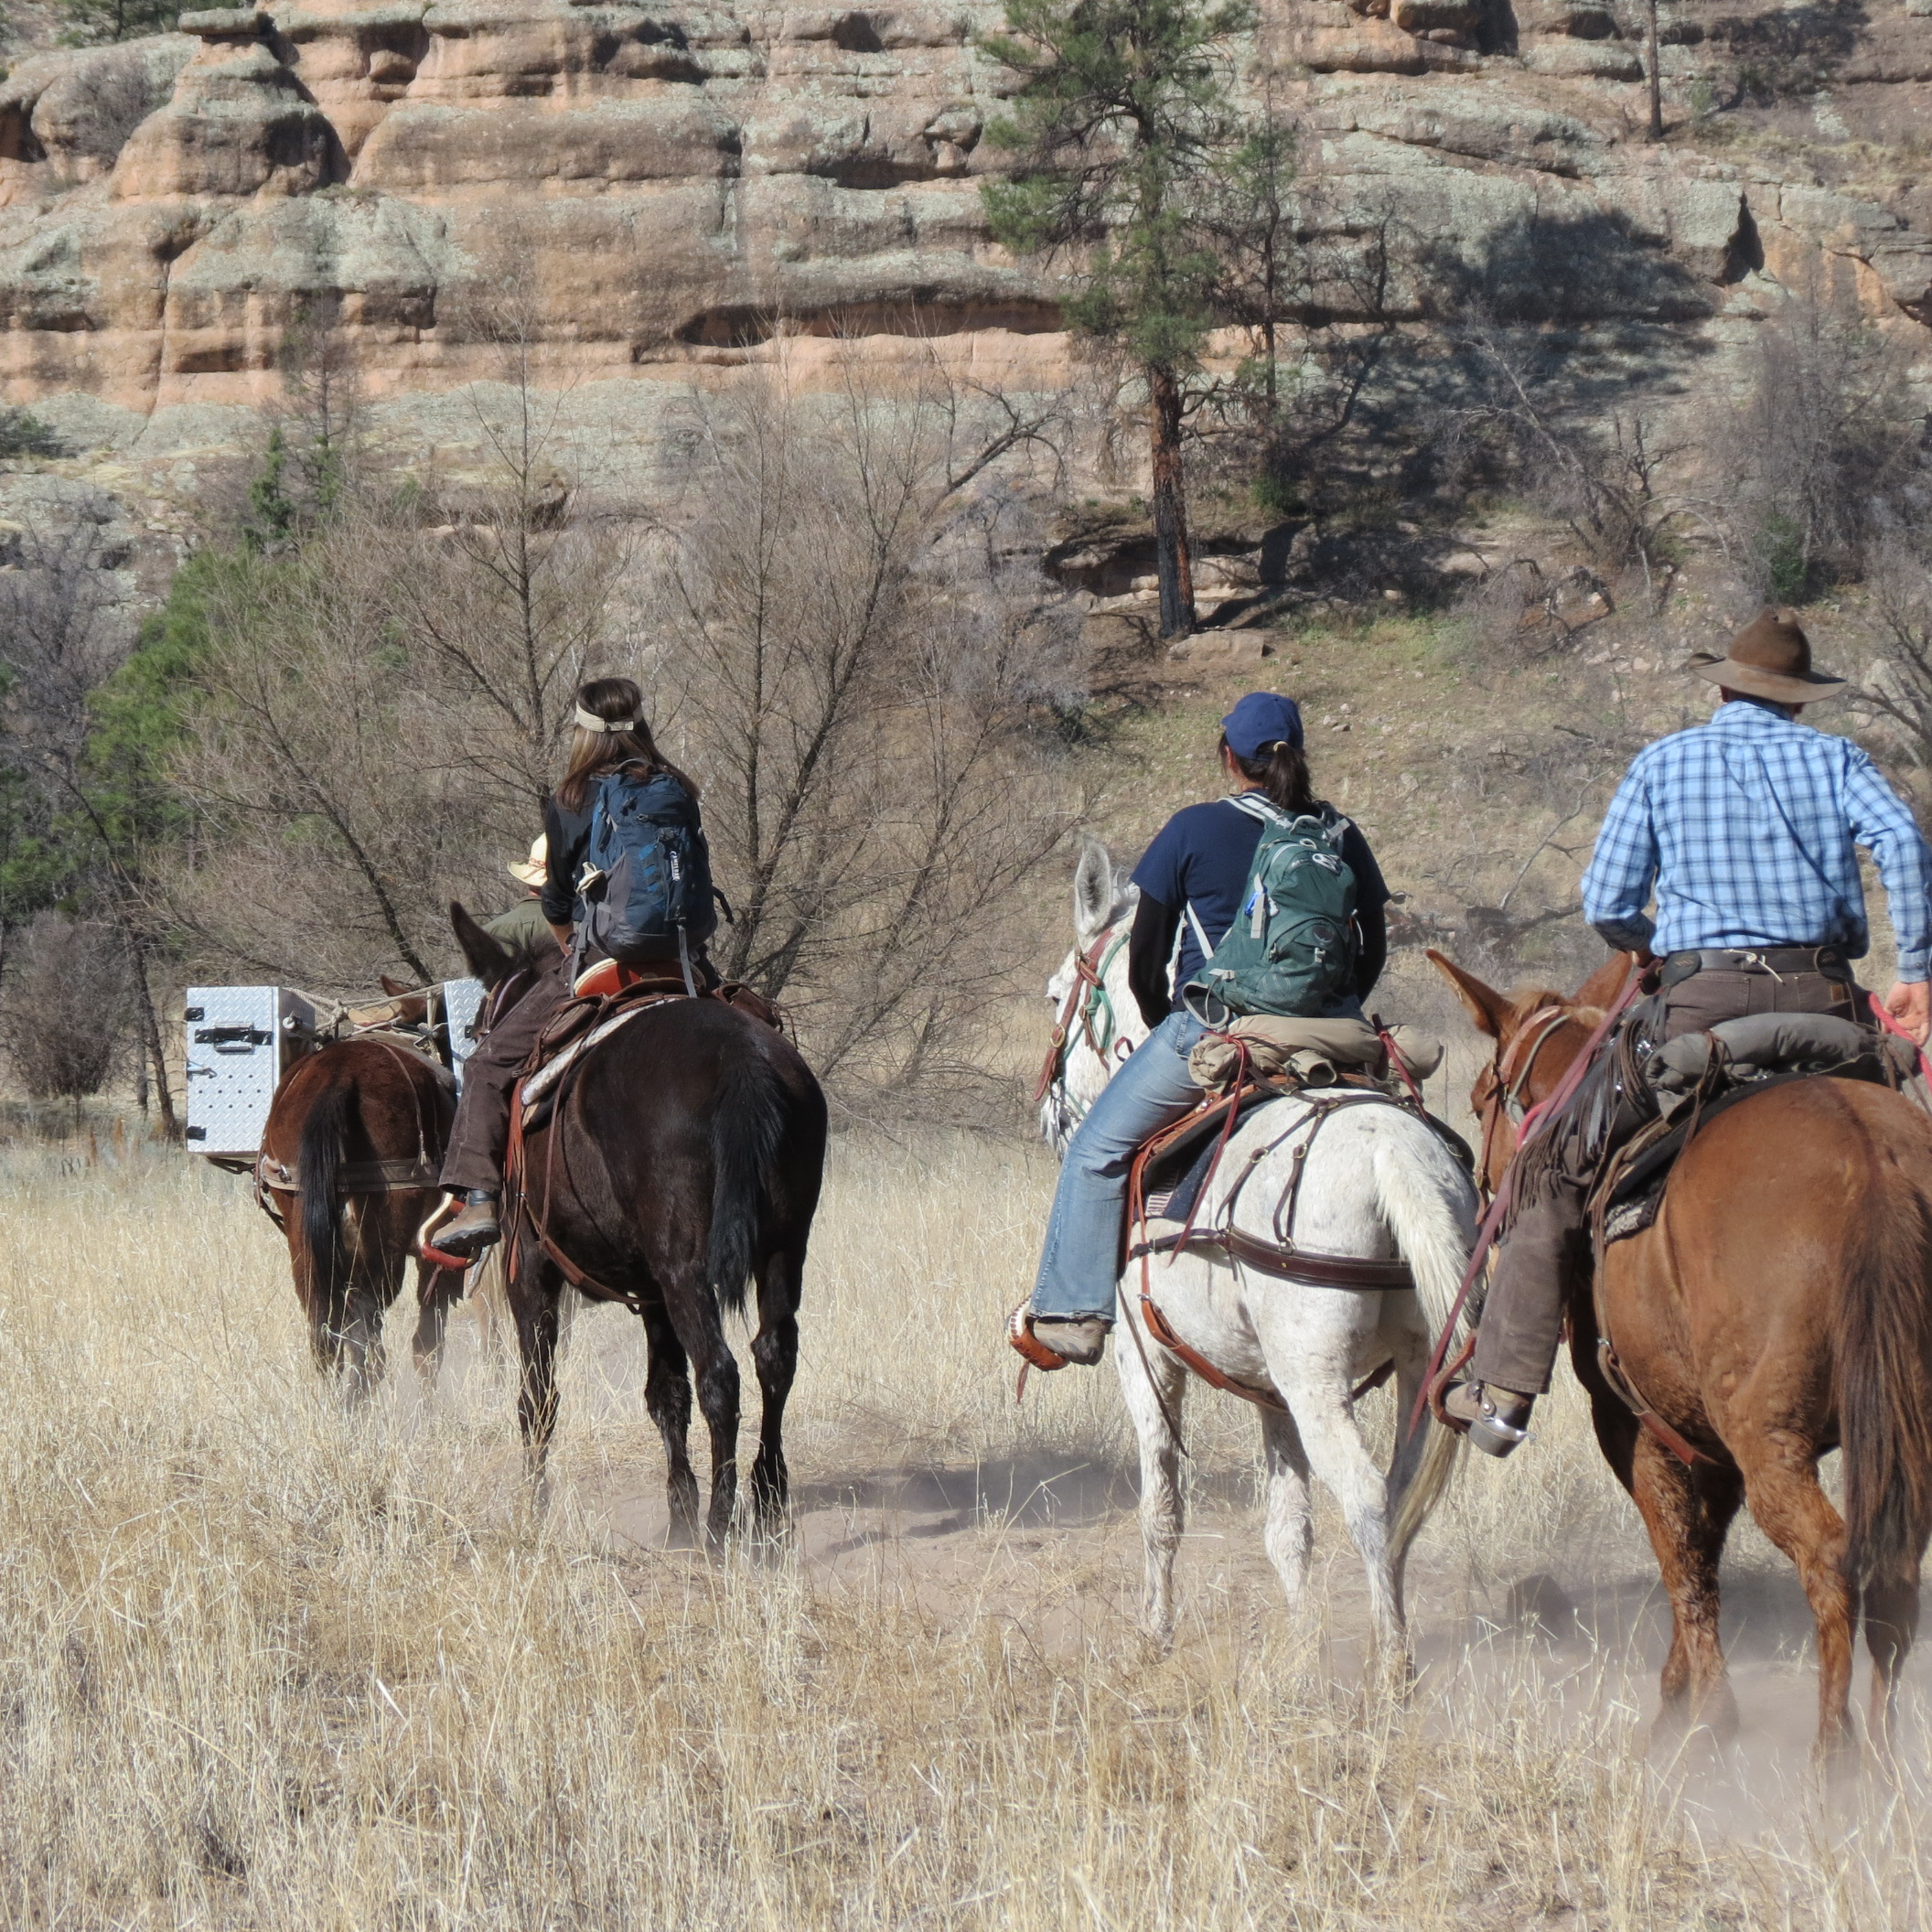 A group on horseback travel into the wilderness with a hired guide.